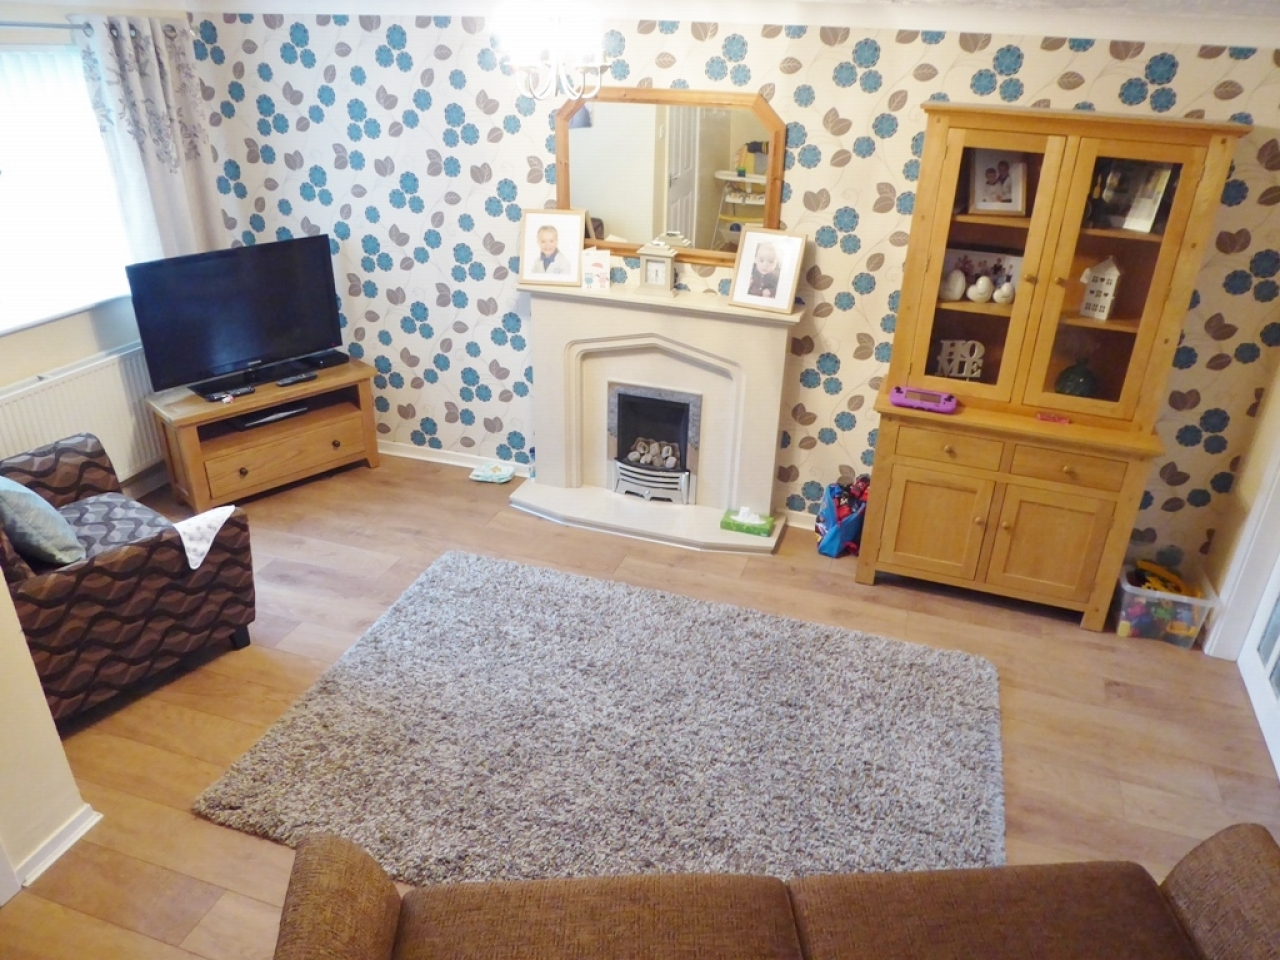 3 bedroom house For Sale in Abergele - Property photograph